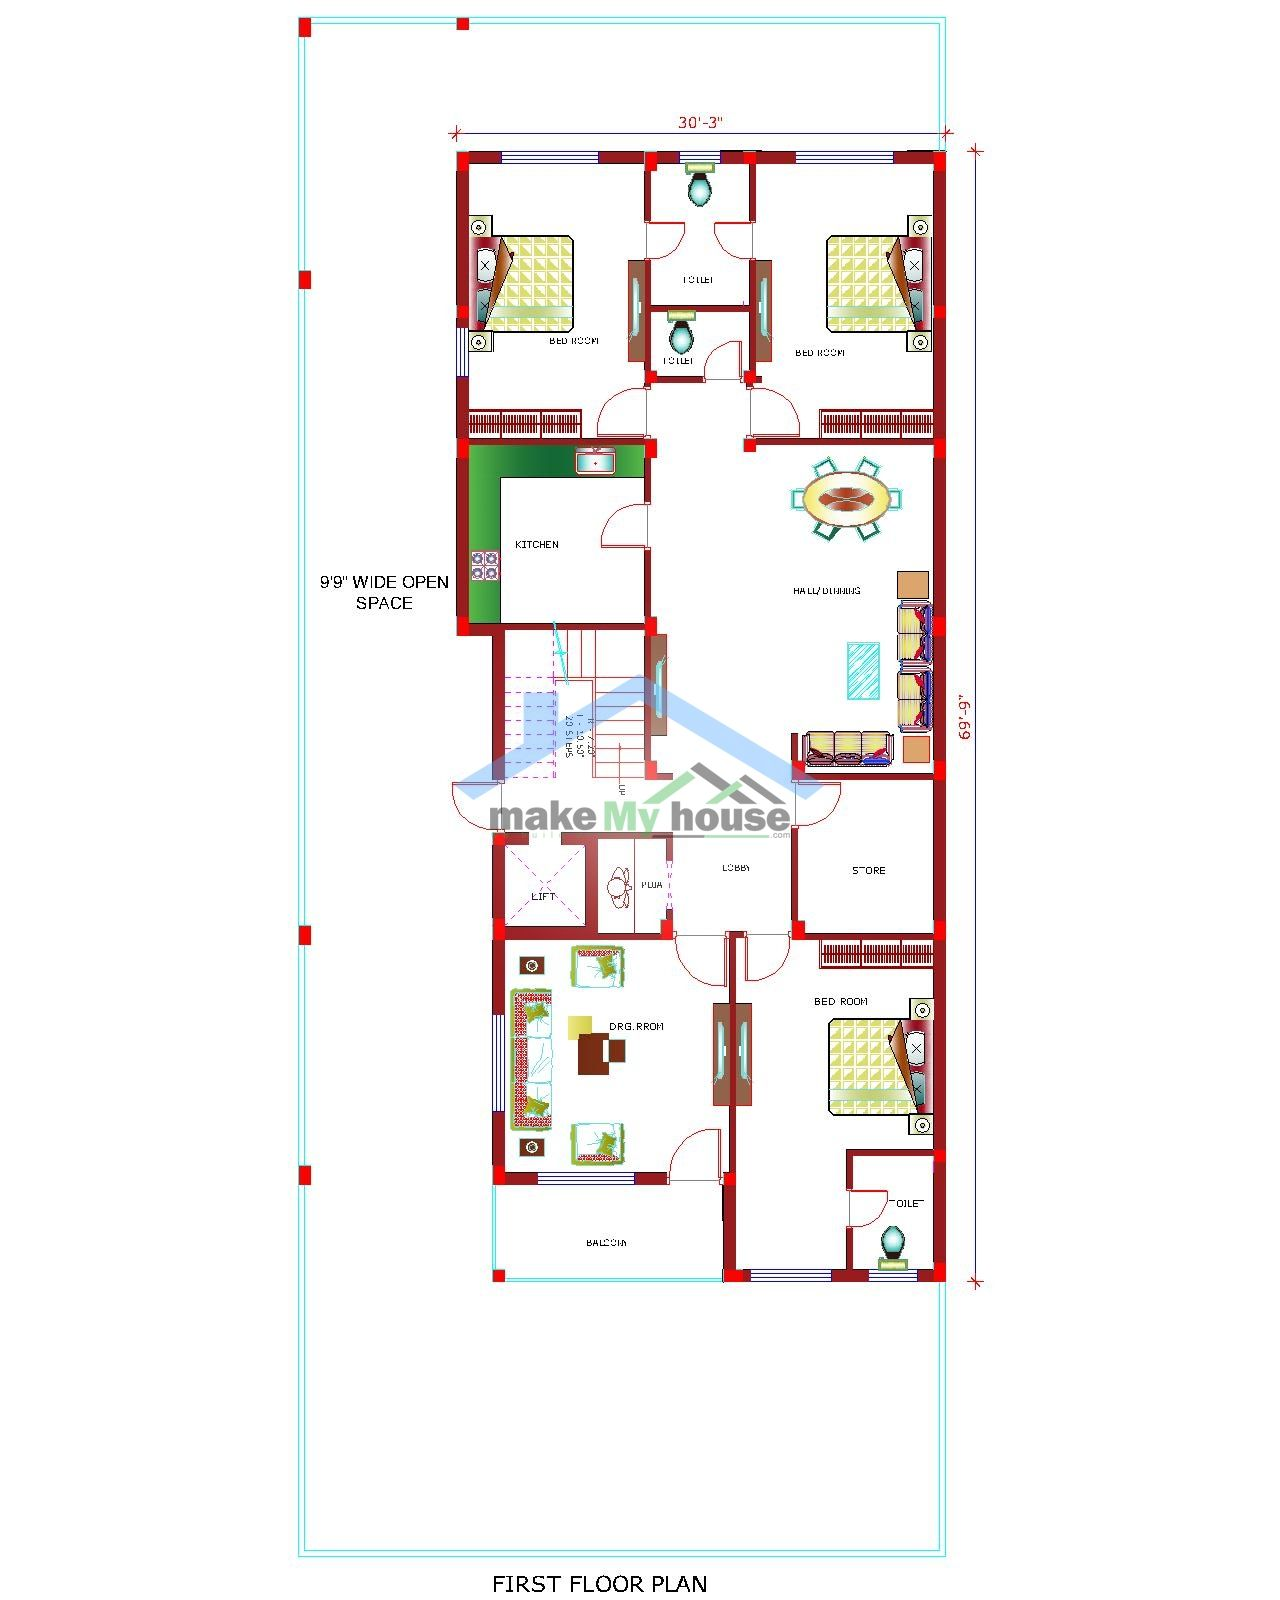 Make My House Featured Product Two Storey House 40 Ft X 100 Ft Bathroom 6 Bedroom 6 Floors 2 Kitchen Floor Plans How To Plan Two Storey House